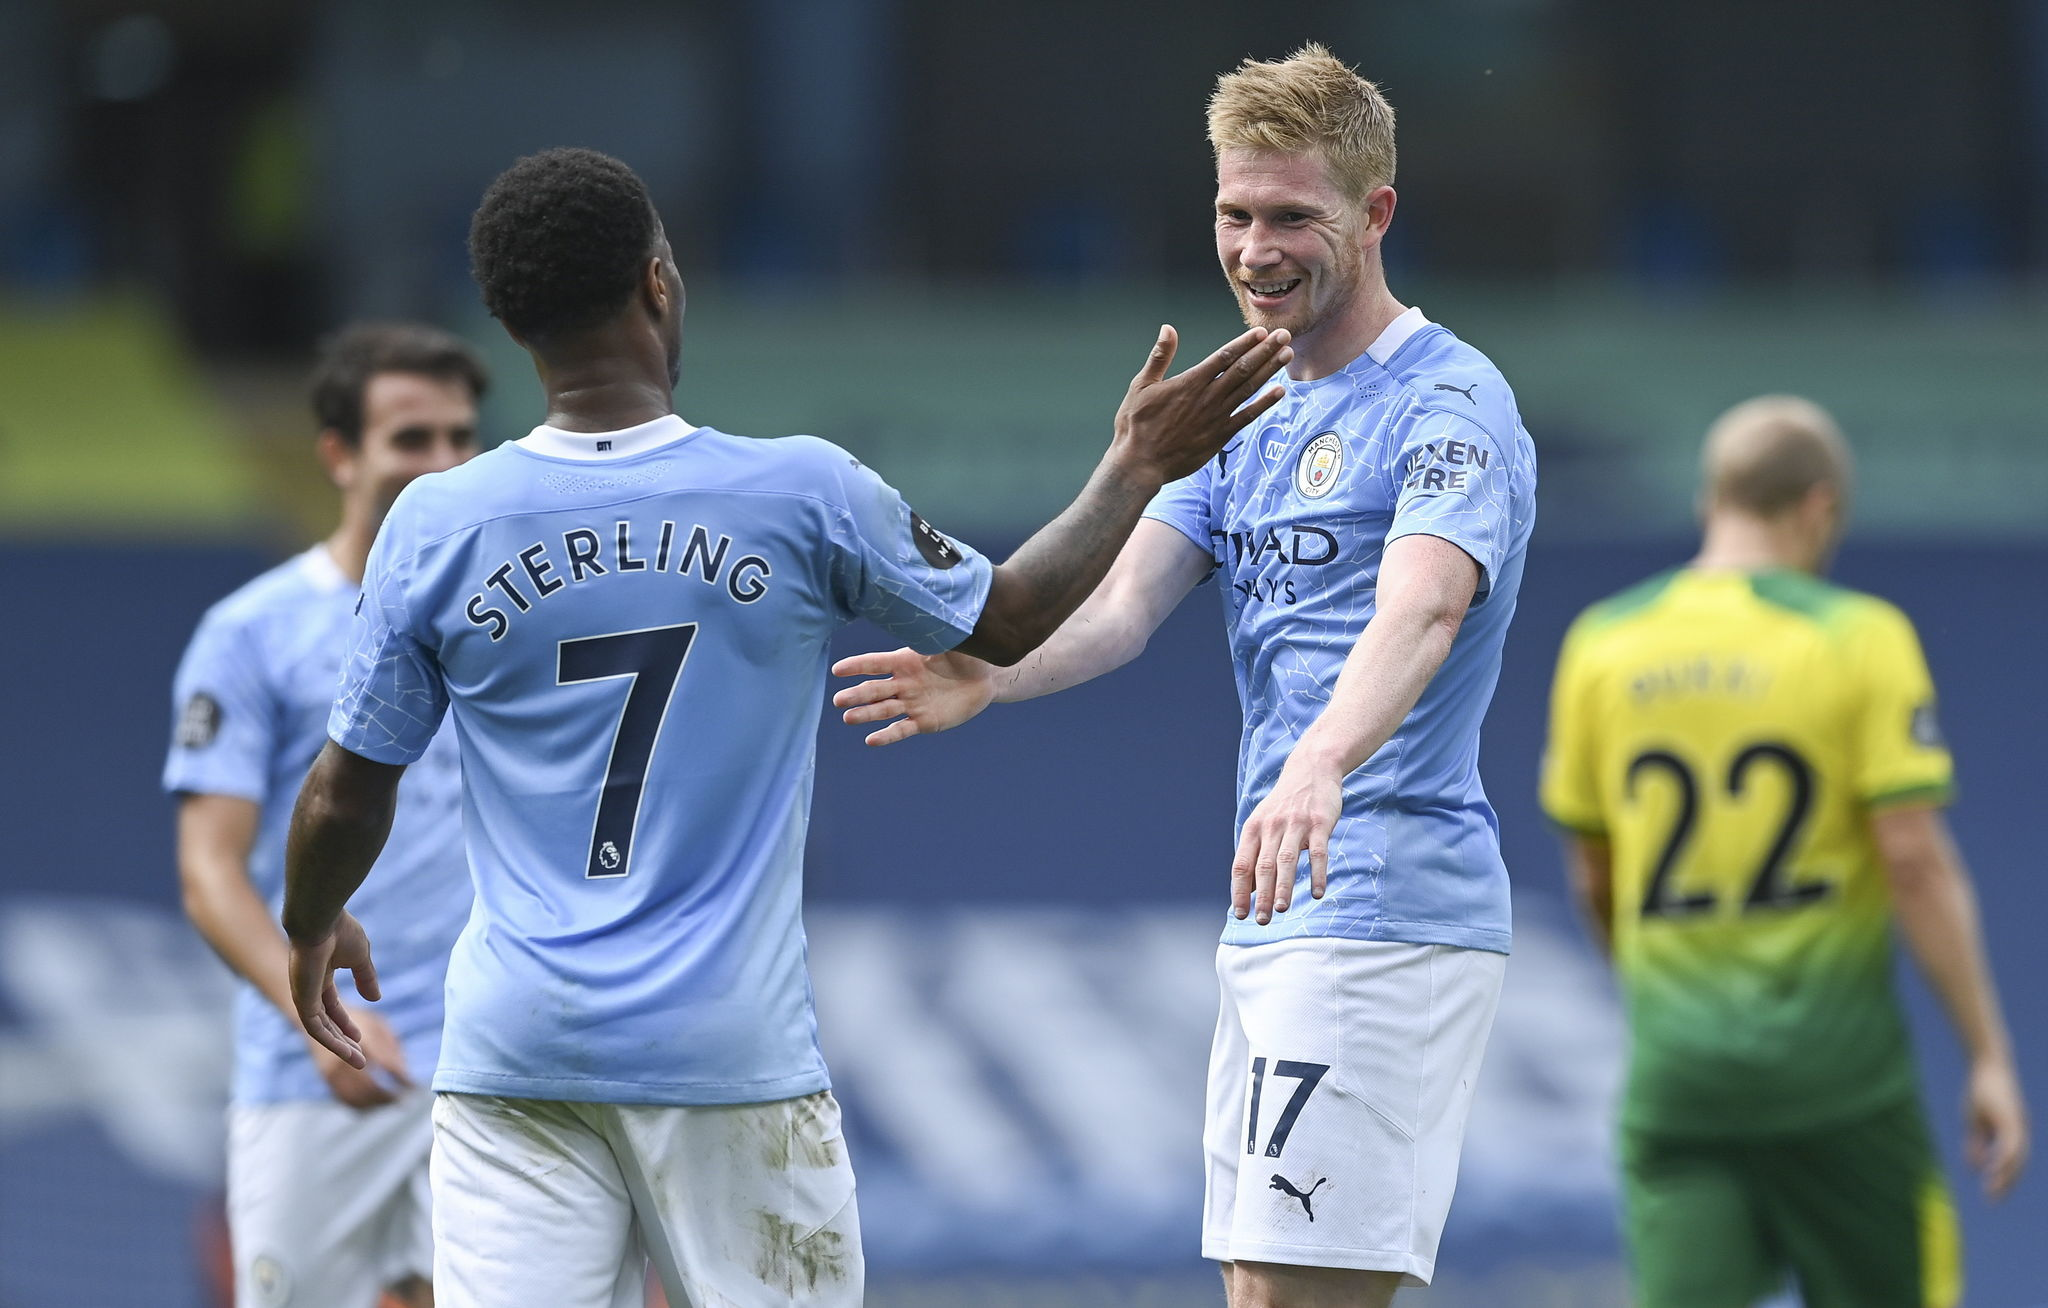 Manchester (United Kingdom), 26/07/2020.- Kevin De lt;HIT gt;Bruyne lt;/HIT gt; (R) of Manchester City reacts after scoring the 2-0 goal during the English Premier League match between Manchester City and Norwich City in Manchester, Britain, 26 July 2020. (Reino Unido) EFE/EPA/Shaun Botterill/NMC/Pool EDITORIAL USE ONLY. No use with unauthorized audio, video, data, fixture lists, club/league logos or live services. Online in-match use limited to 120 images, no video emulation. No use in betting, games or single club/league/player publications